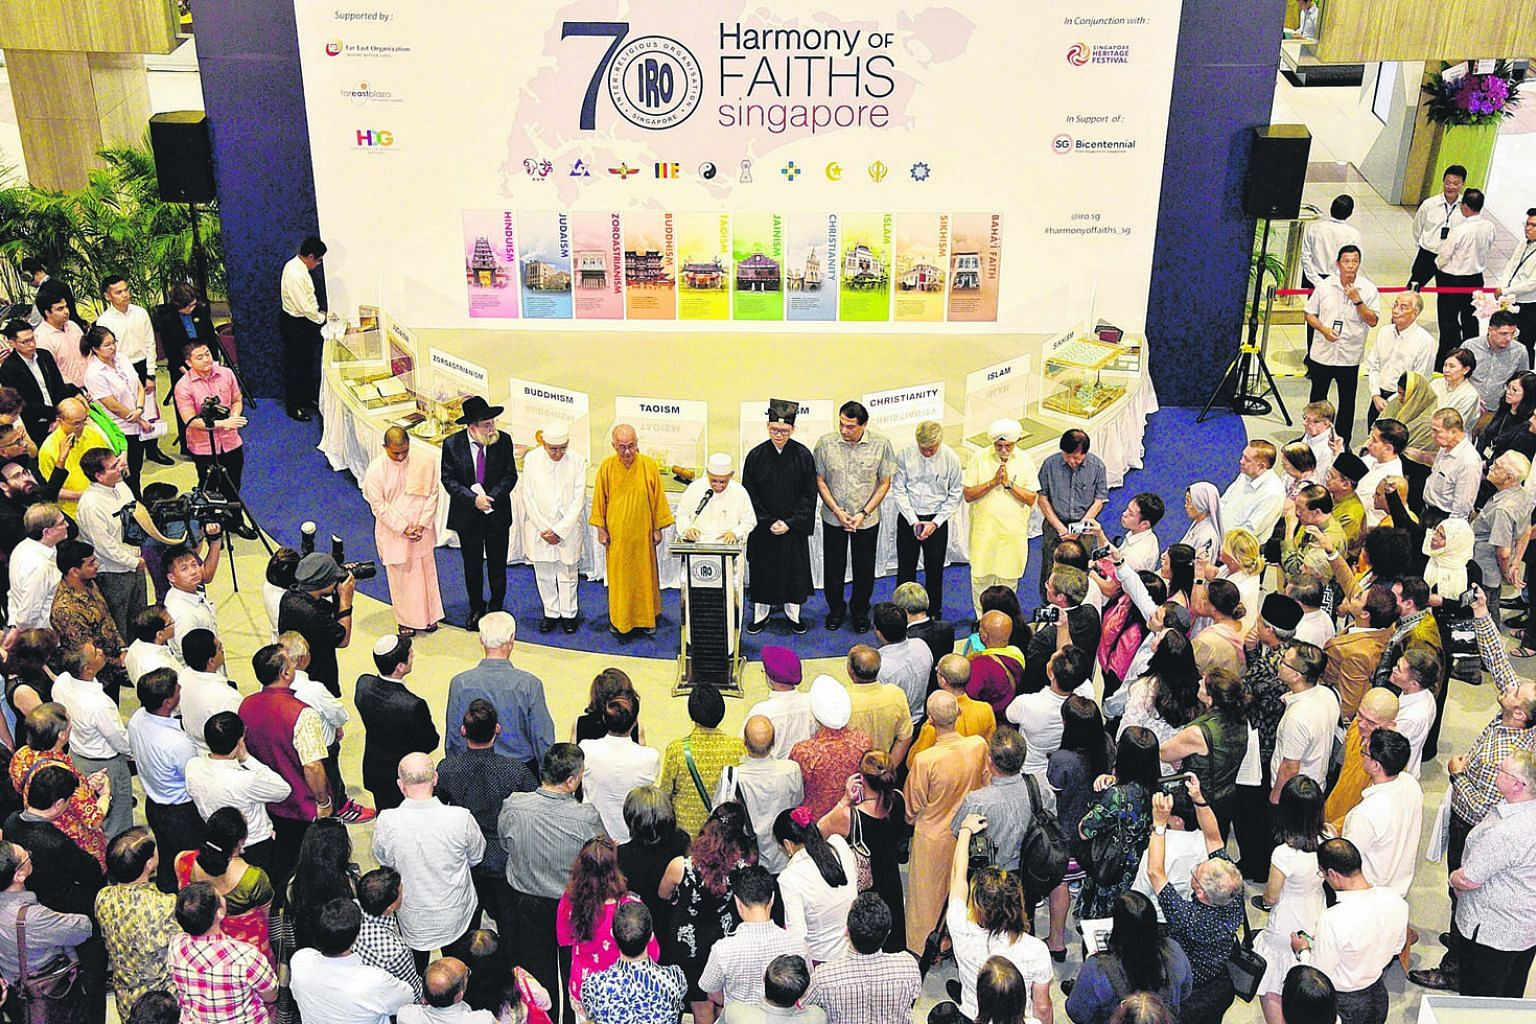 Interfaith prayers being held during the 70th anniversary of the founding of Inter-Religious Organisation, Singapore at Far East Plaza on March 18 last year. The Government has long stressed the values of multiculturalism and interfaith dialogue and